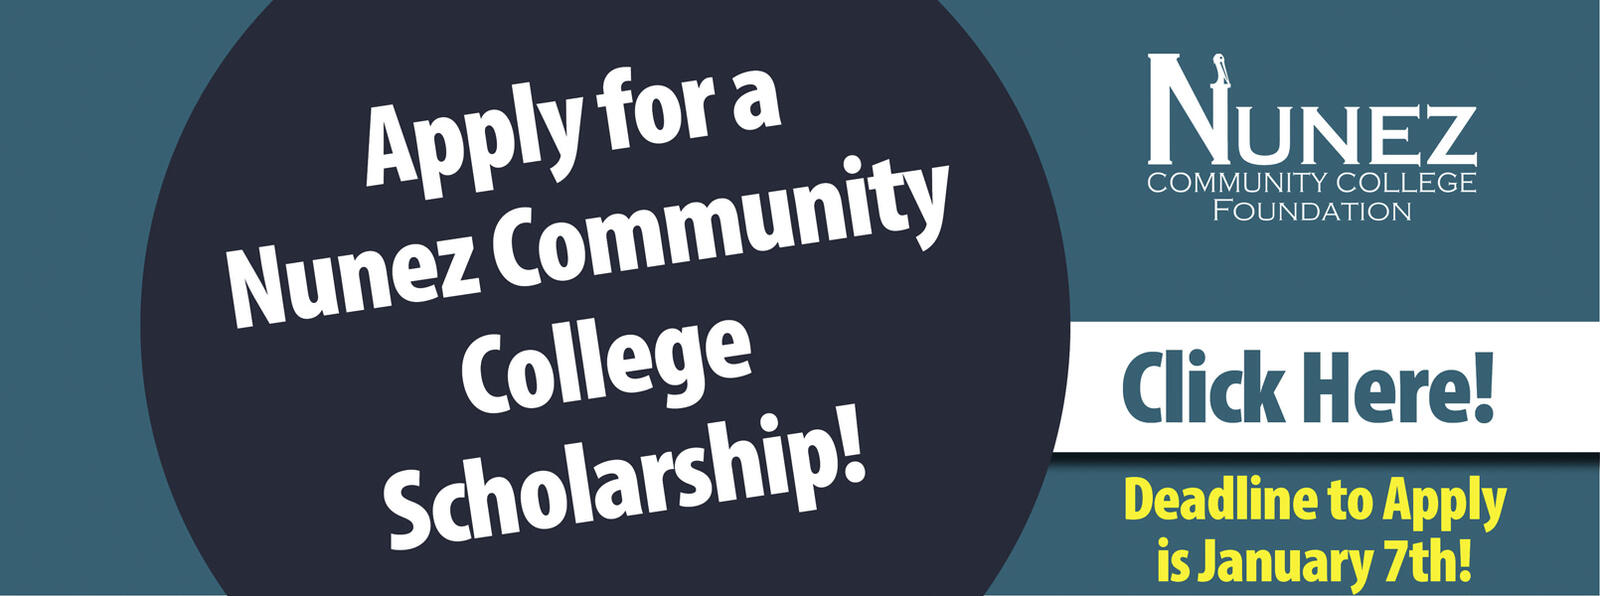 Click Here for Information on How to Apply for Scholarships at Nunez Community College